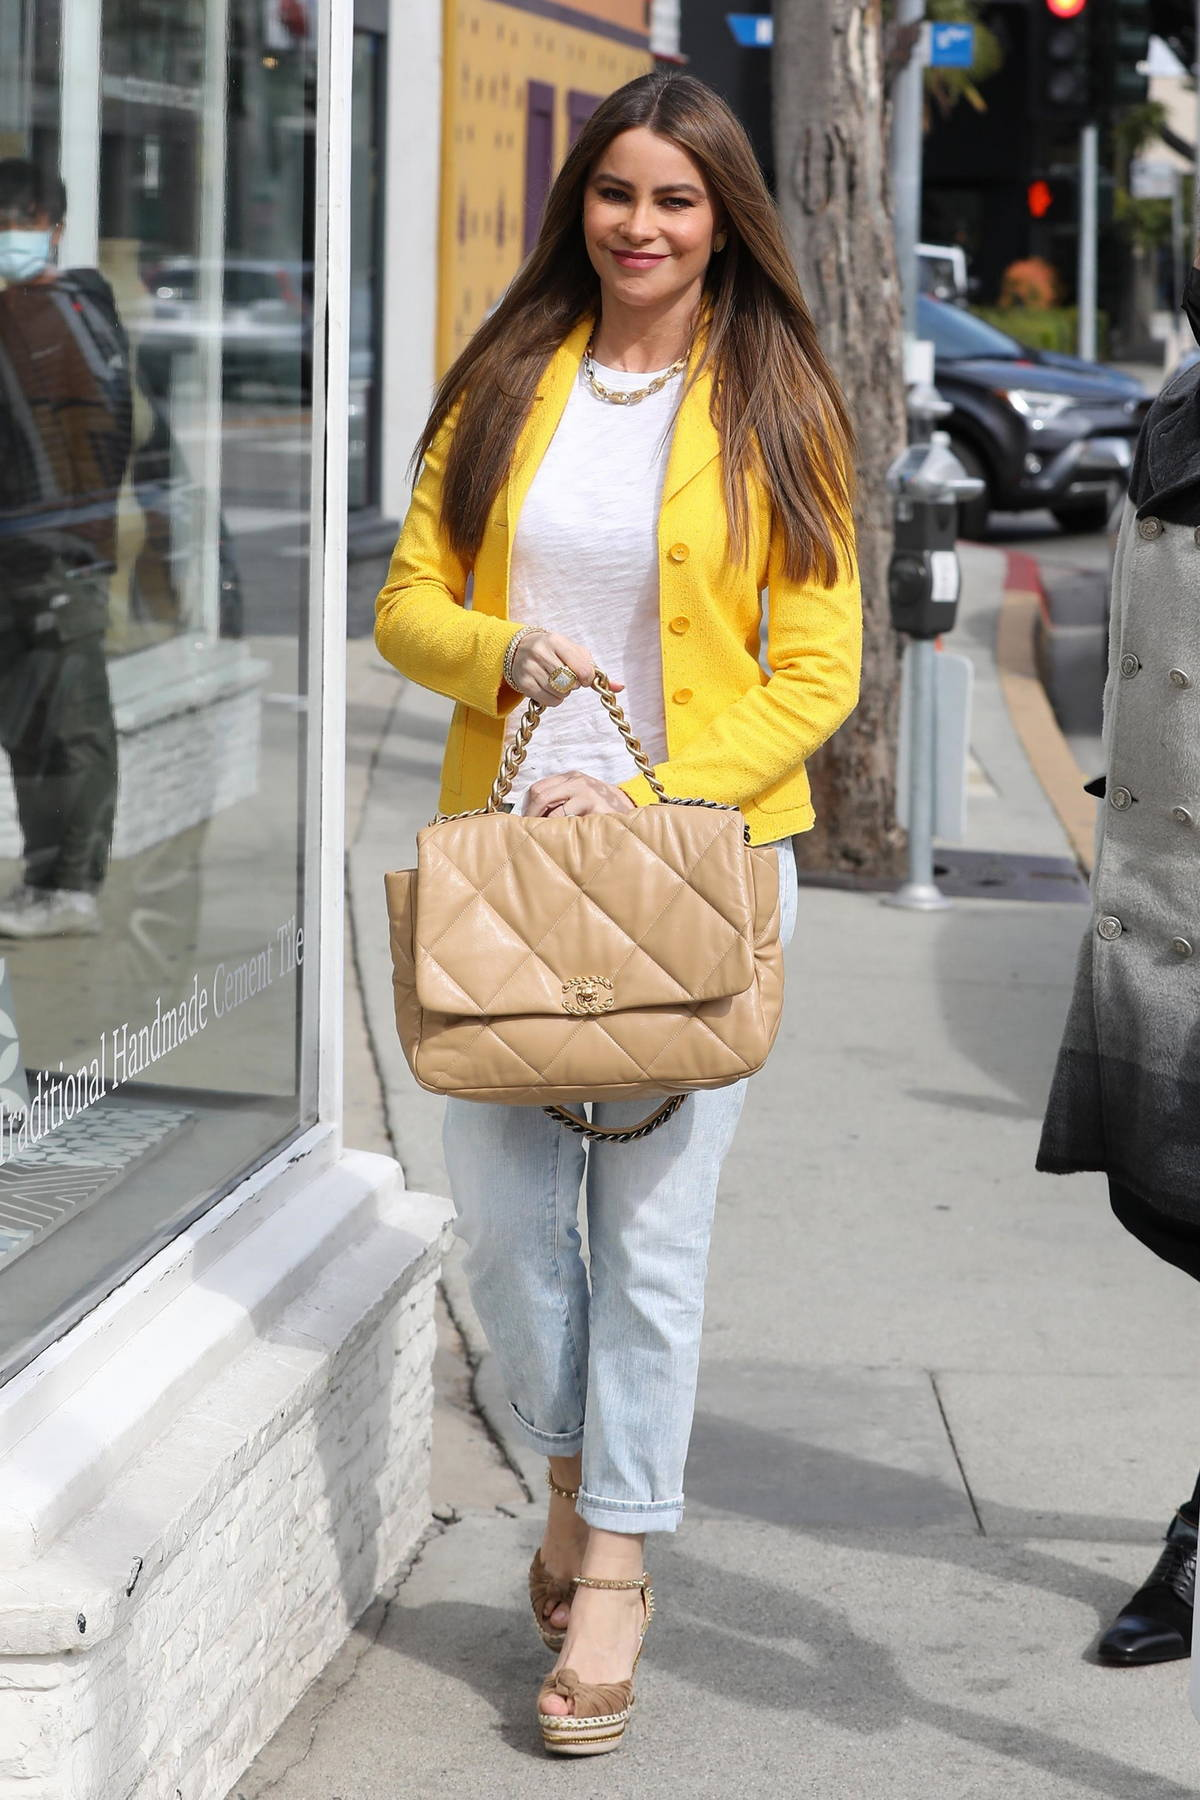 Sofia Vergara looks striking in a yellow jacket as she steps out for some shopping in West Hollywood, California